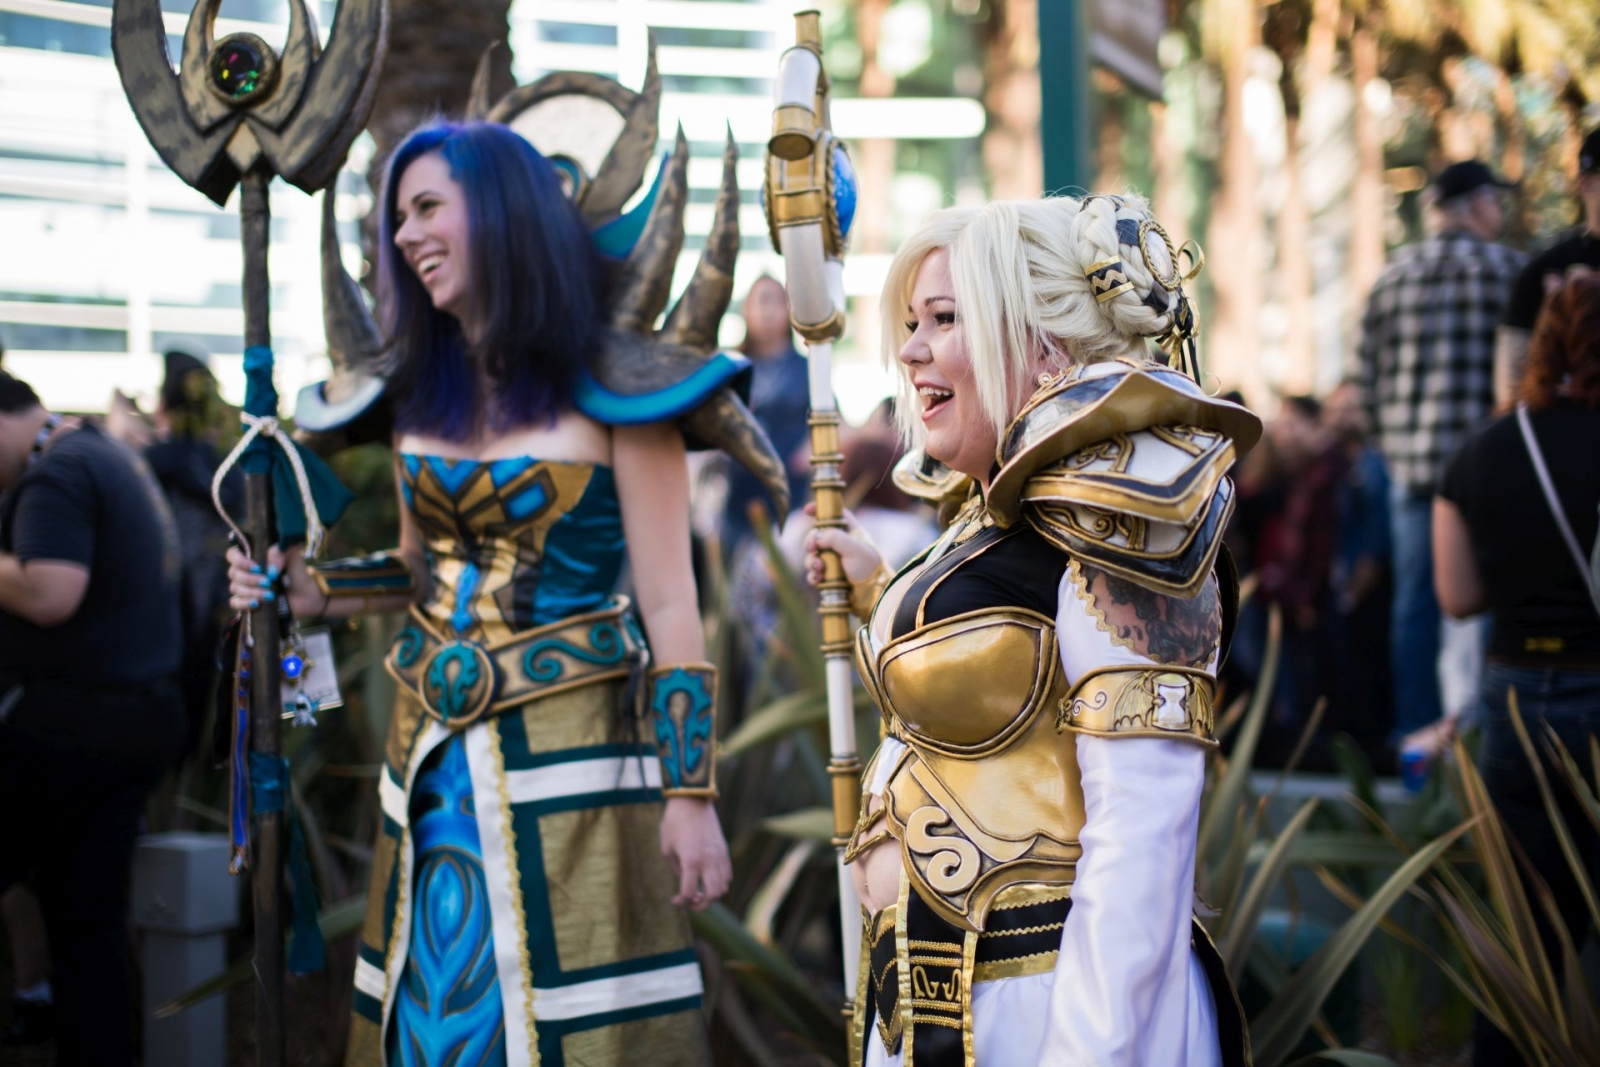 BlizzCon 2014 attendees in cosplay